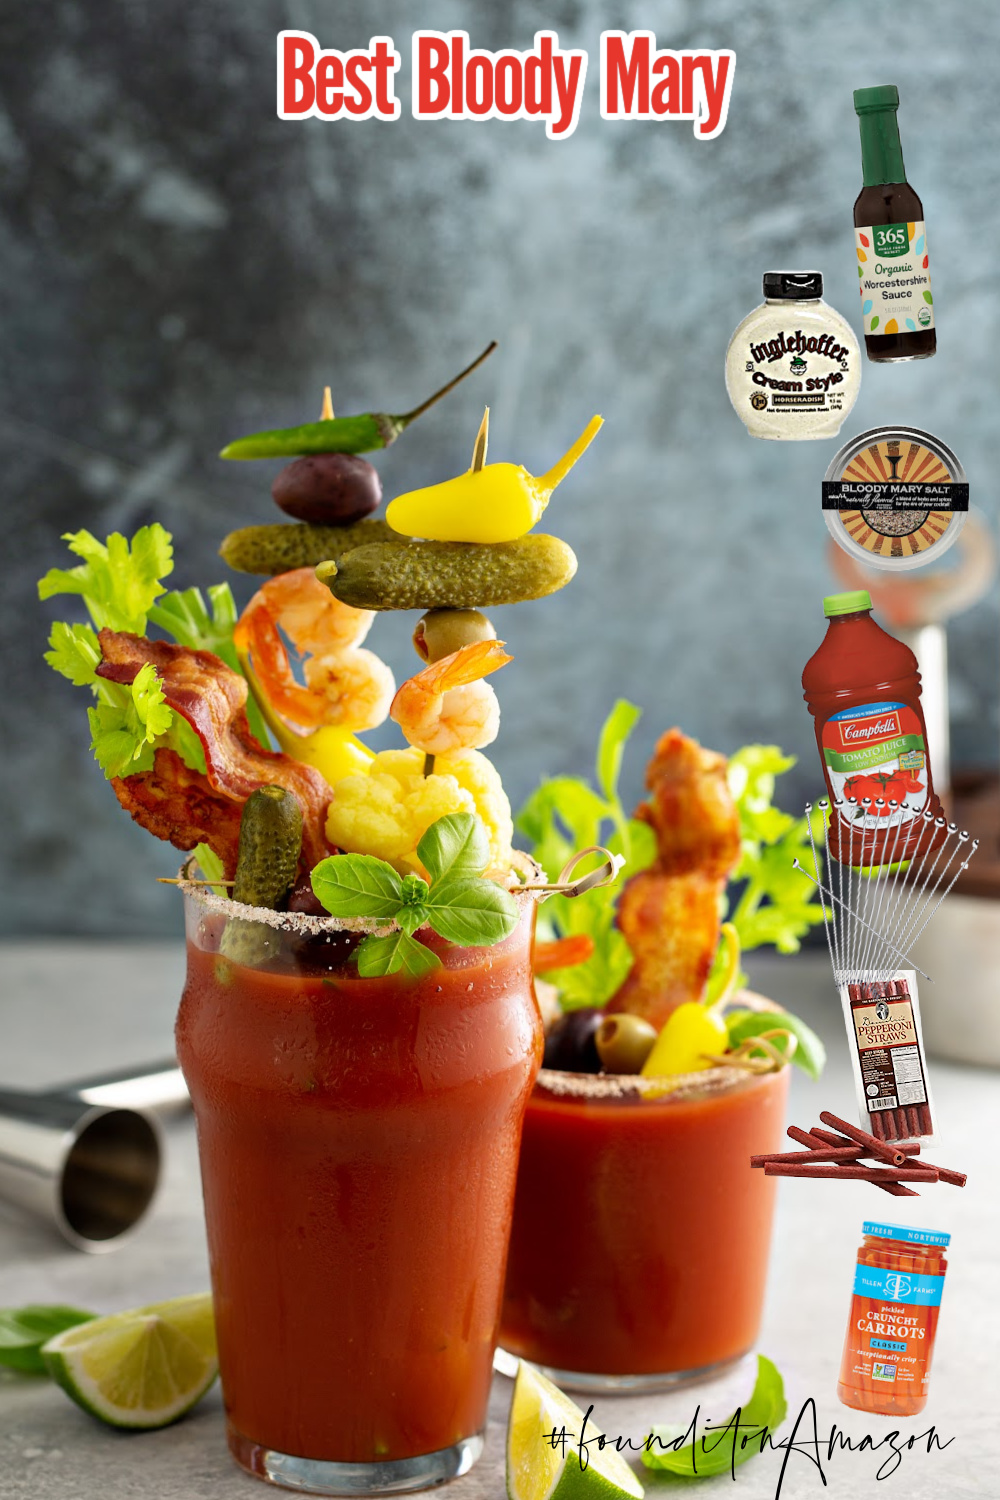 5 STAR BLOODY MARY RECIPE topped with variety of generous garnishes